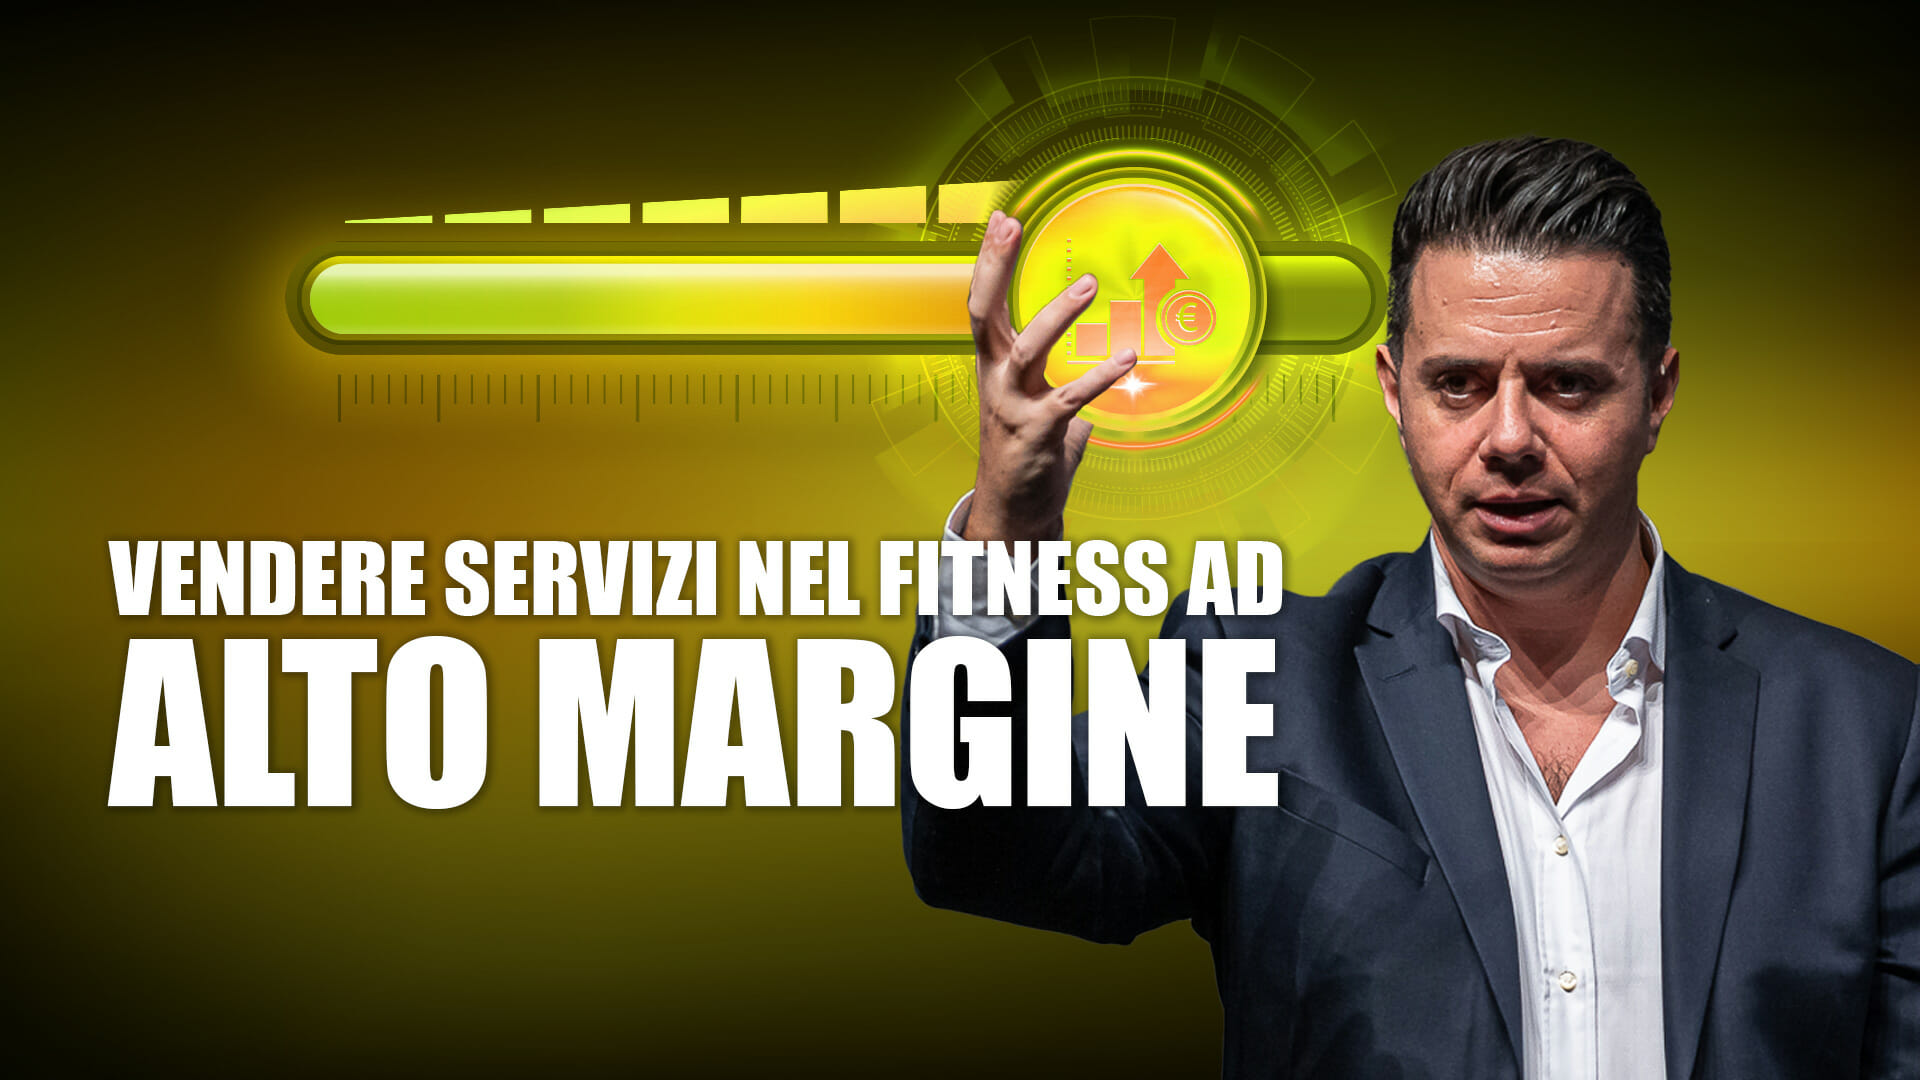 richfit marketing e vendita